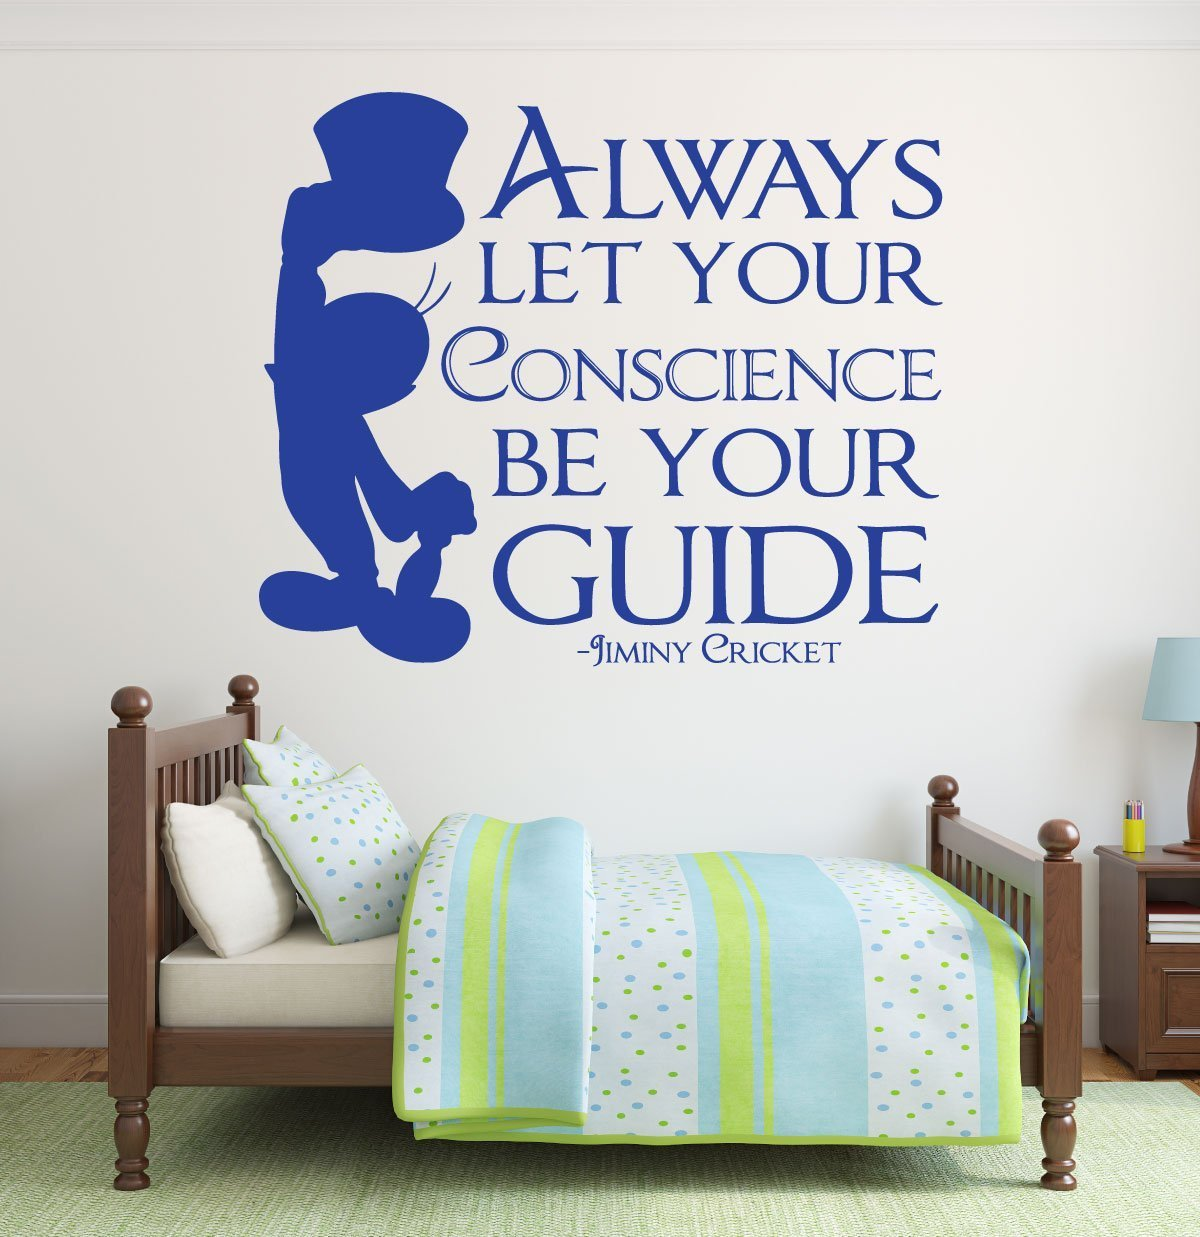 Disney Wall Decals   Jiminy Cricket Decal   Always Let Your Conscience Be  Your Guide